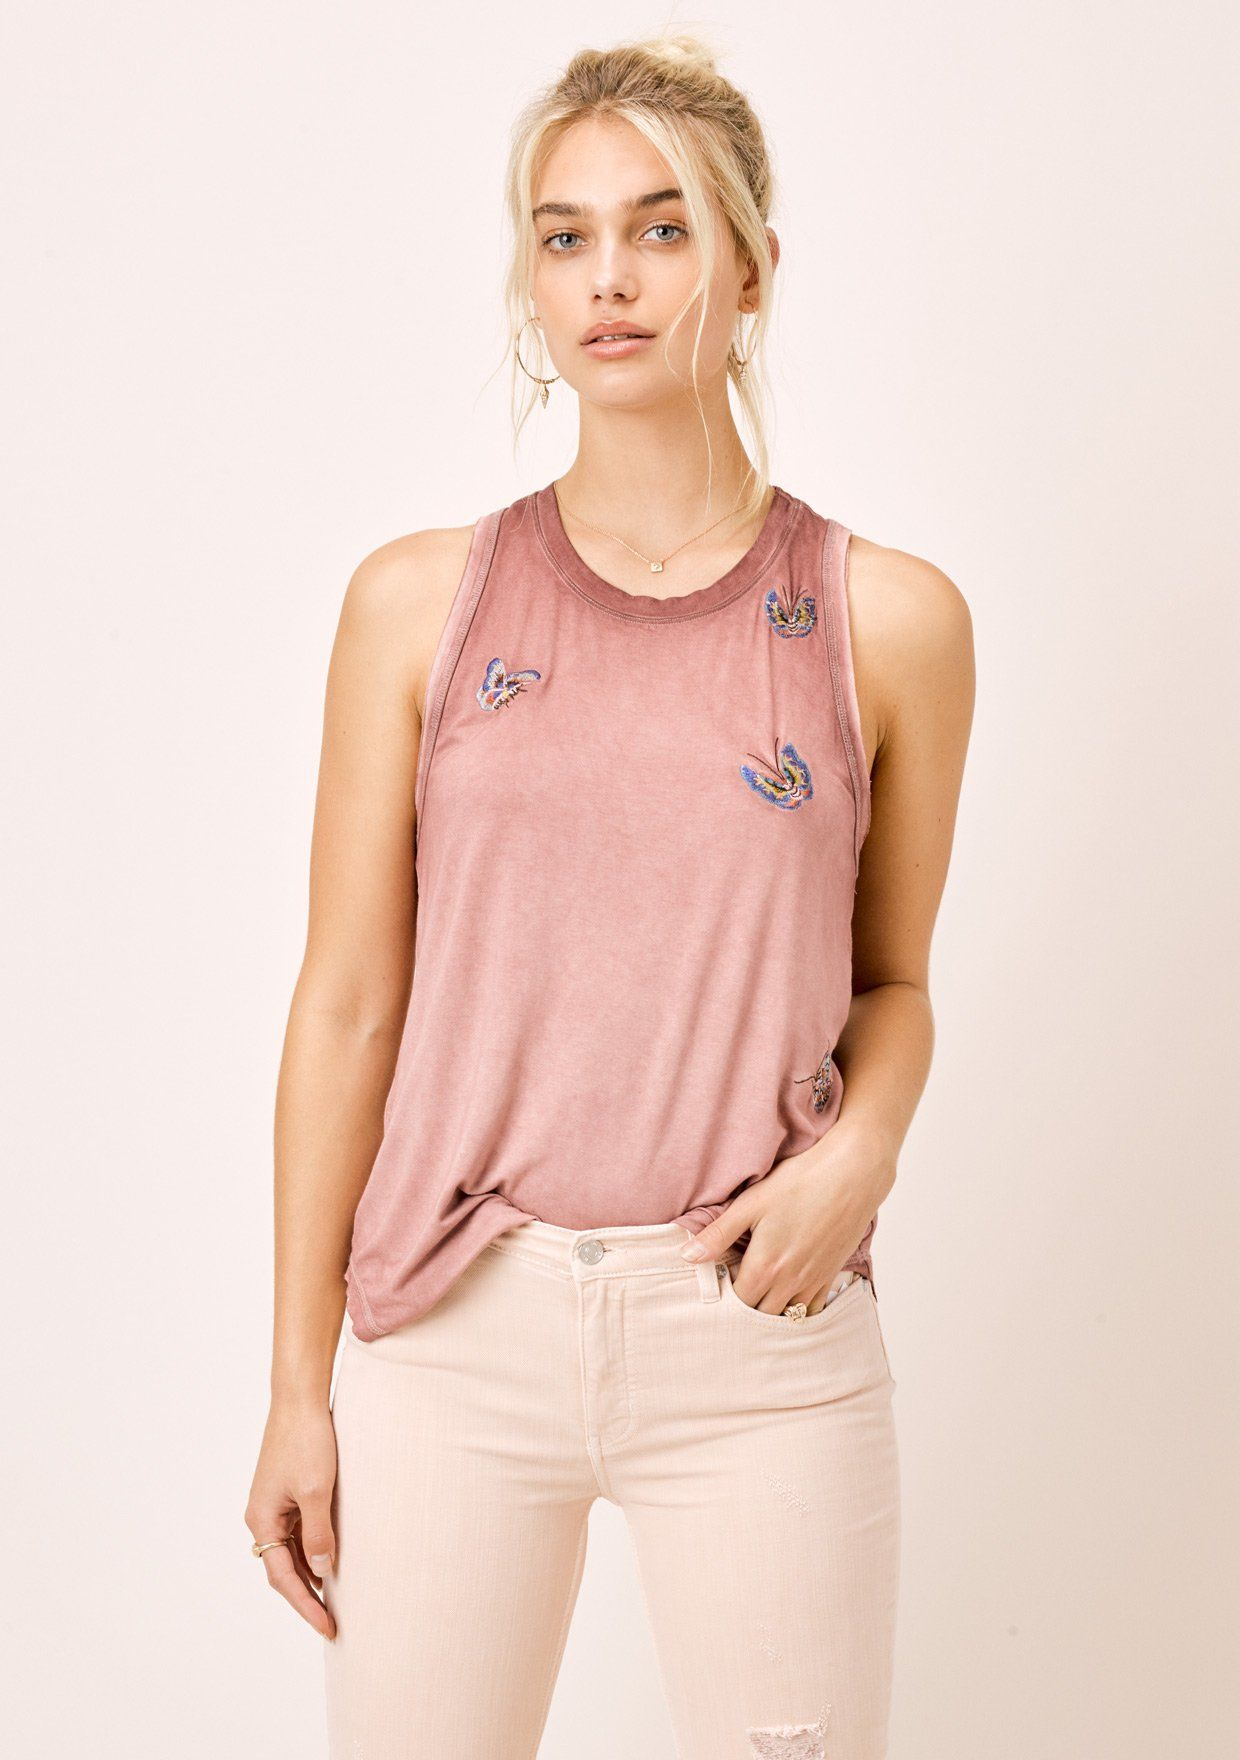 [Color: Vintage Rose] Lovestitch vintage rose, dirty wash, racerback raw edge tank top